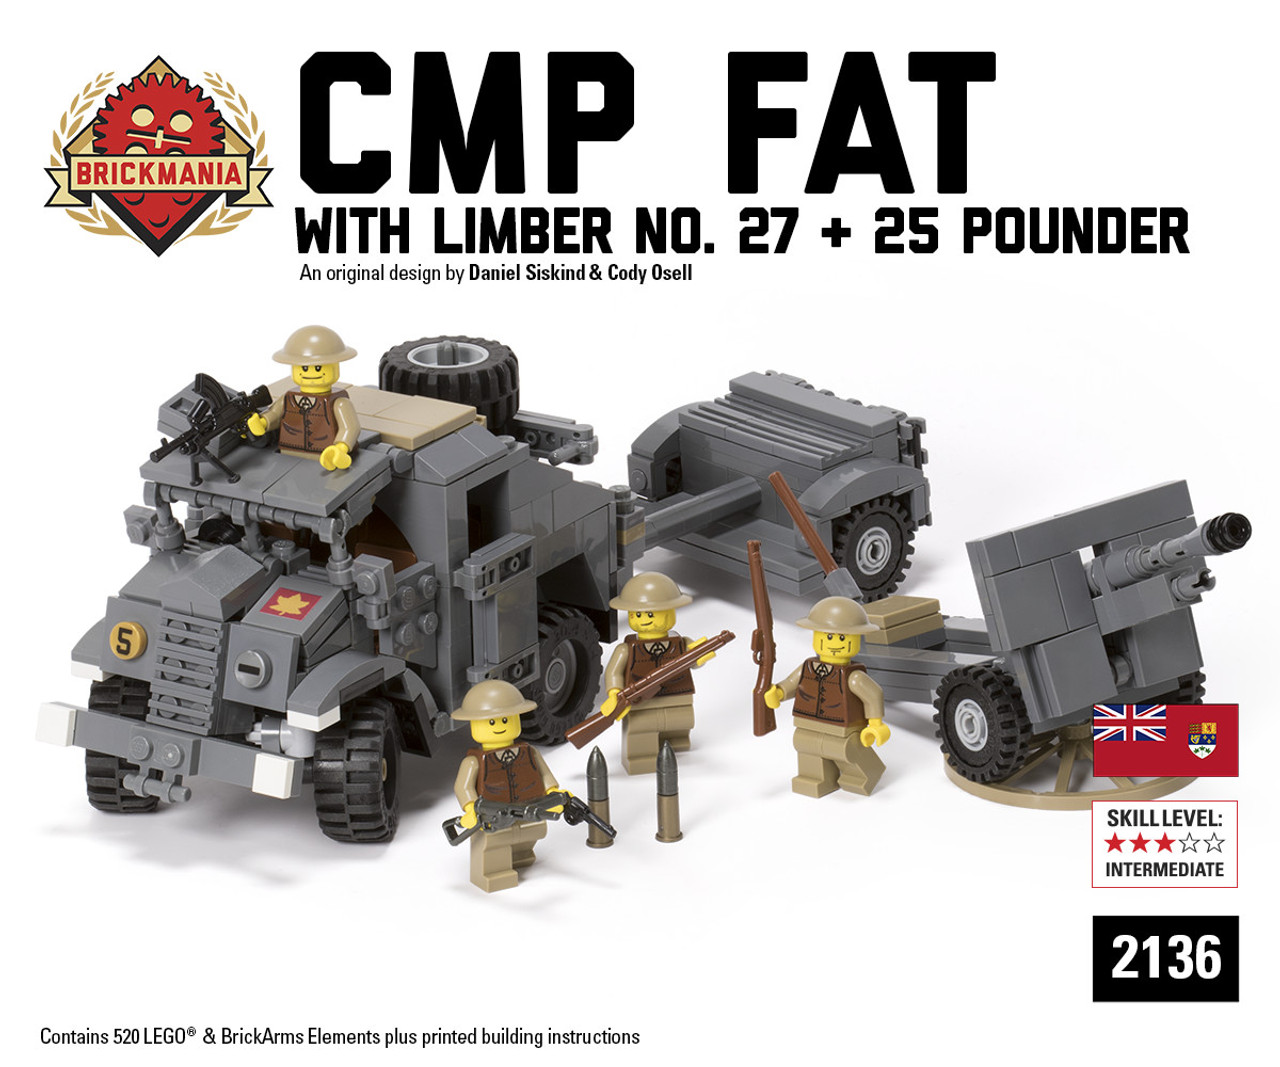 CMP FAT + 25 Pounder